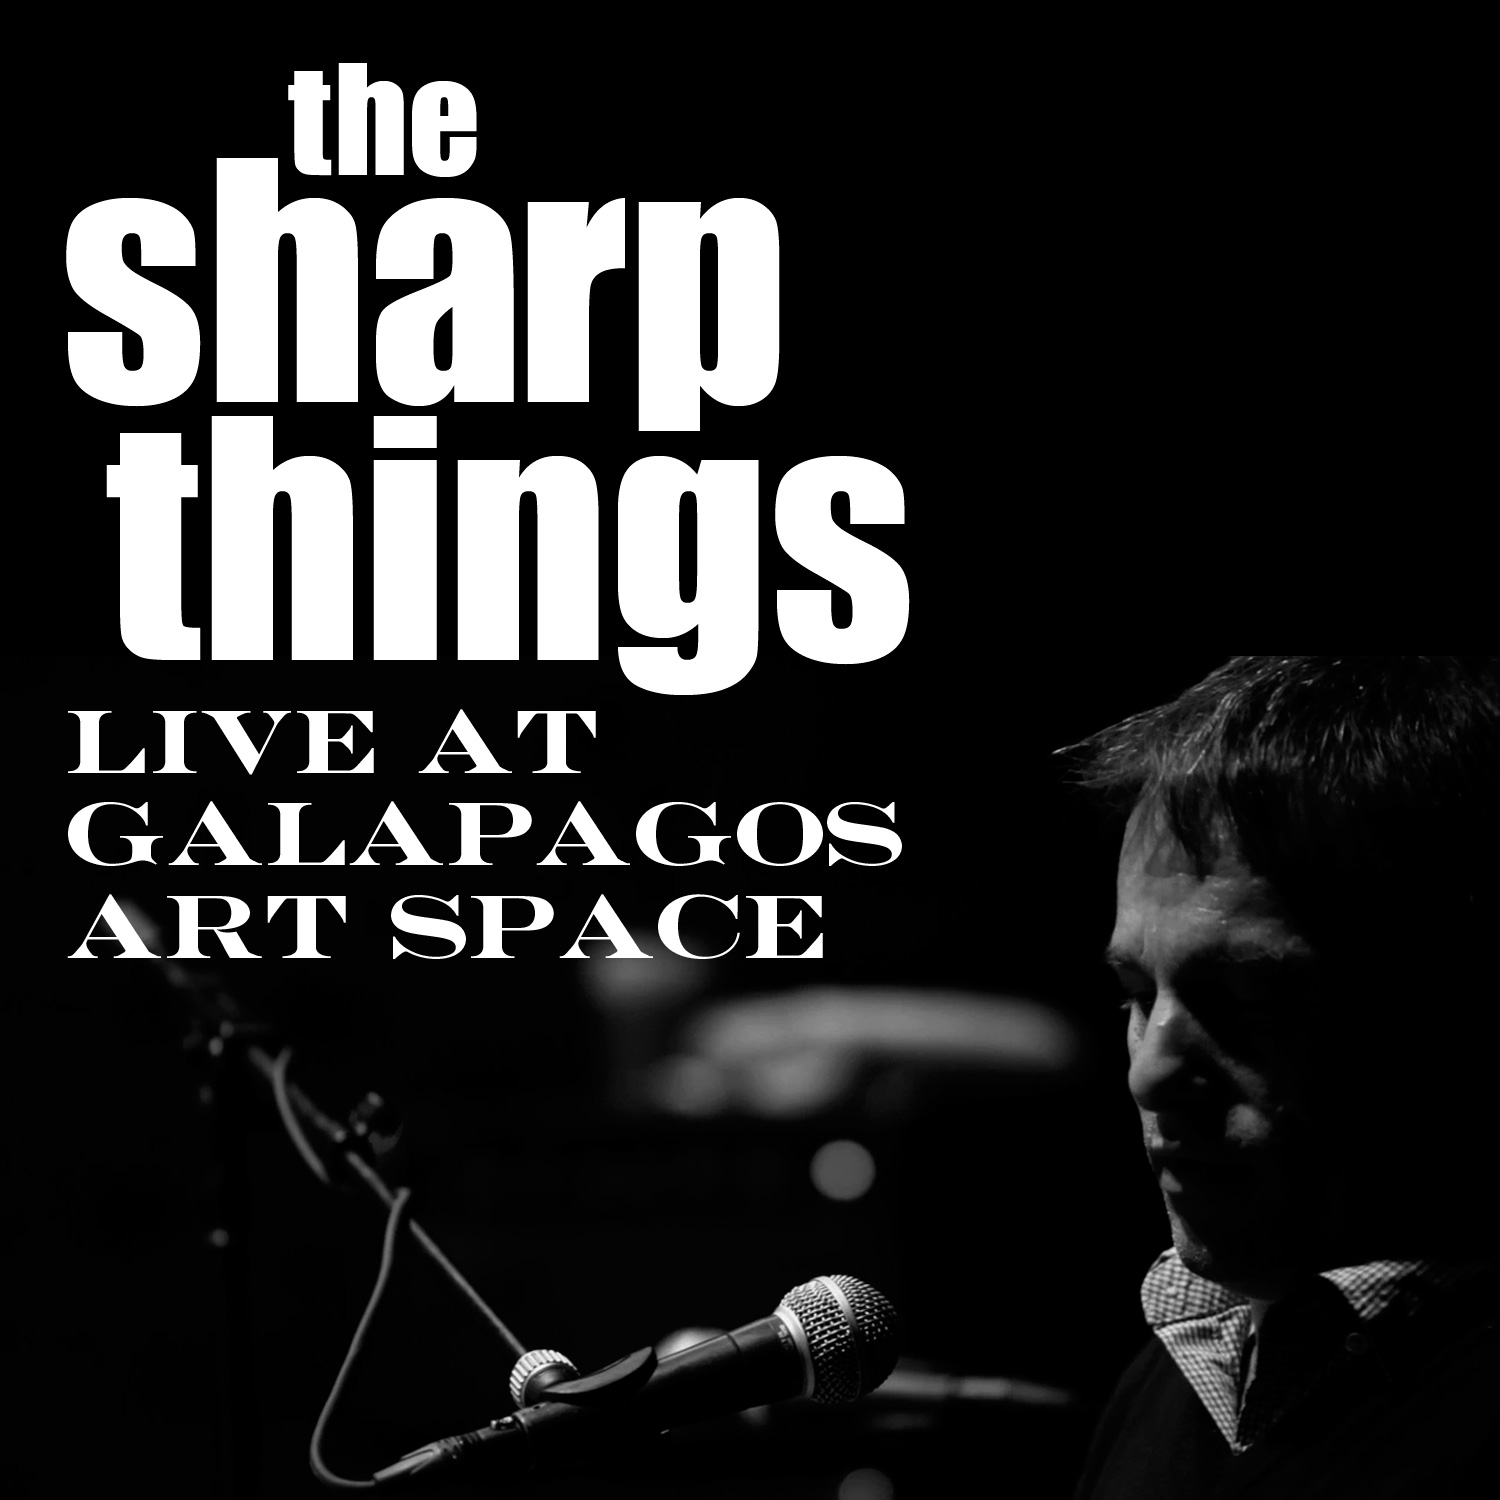 The Sharp Things Live at Galapagos Art Space